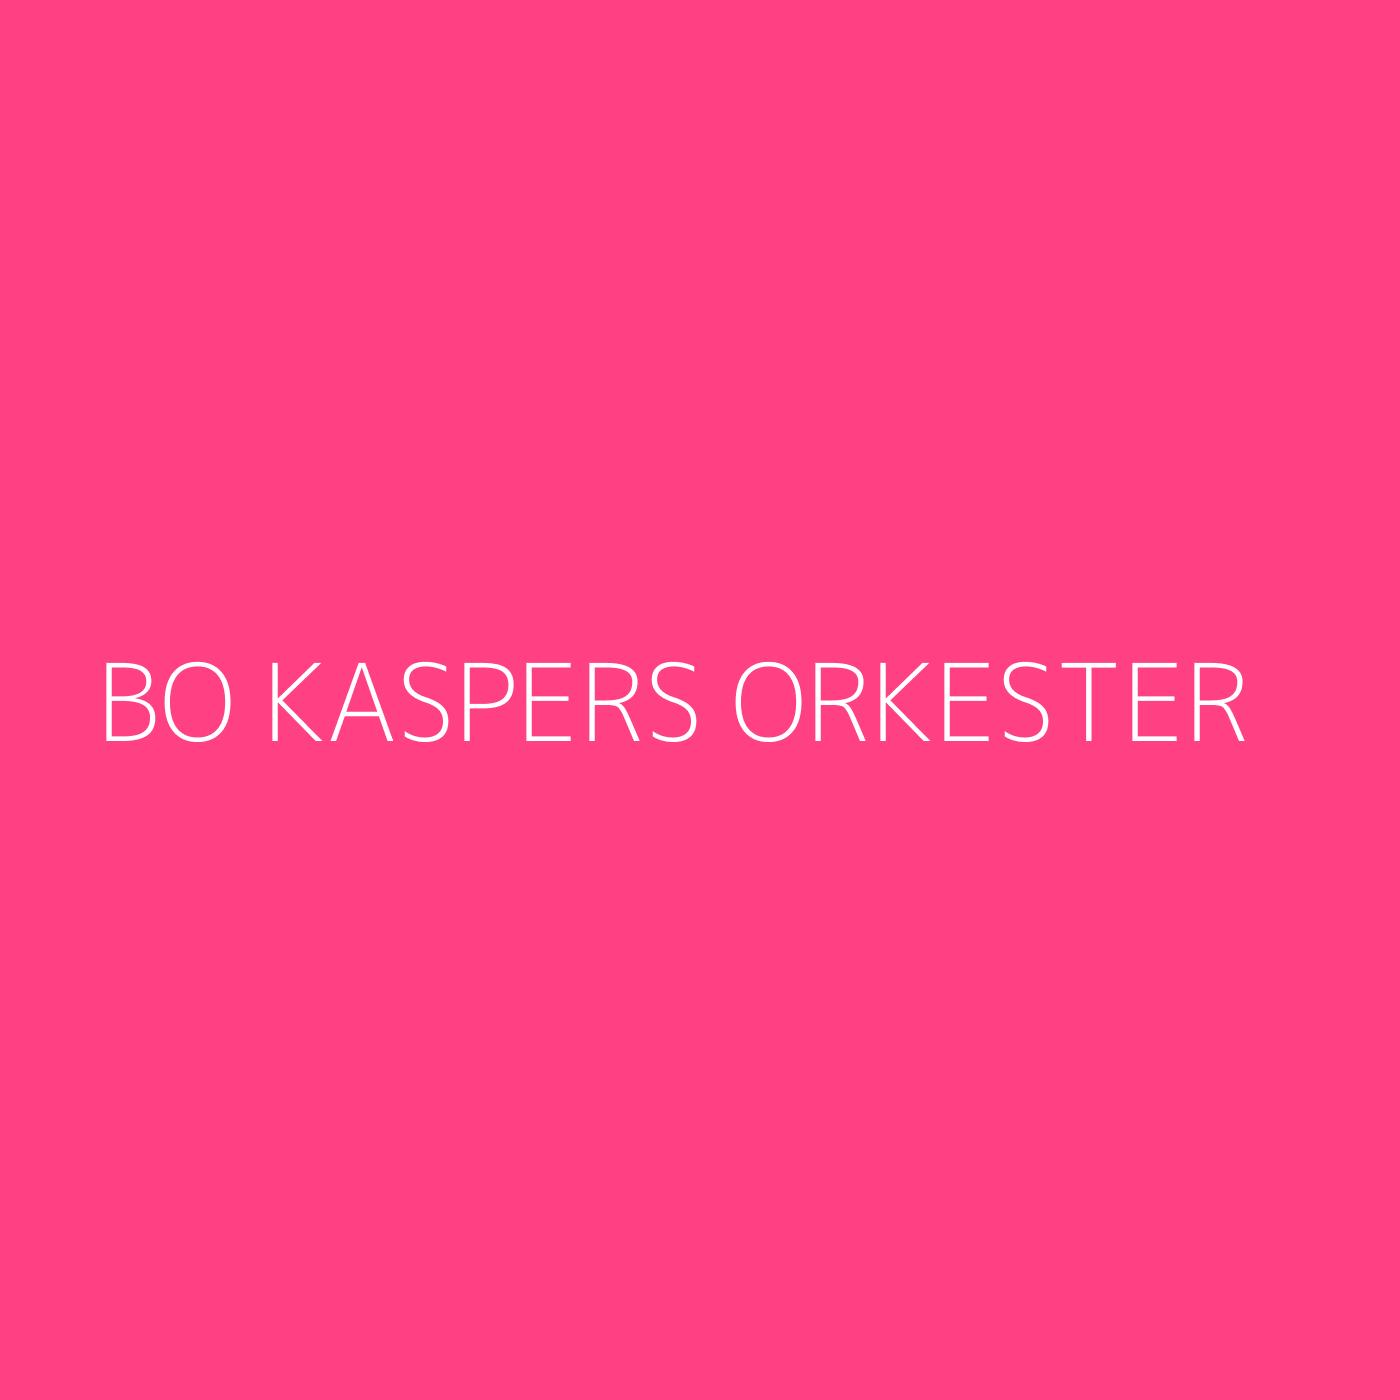 Bo Kaspers Orkester Playlist Artwork